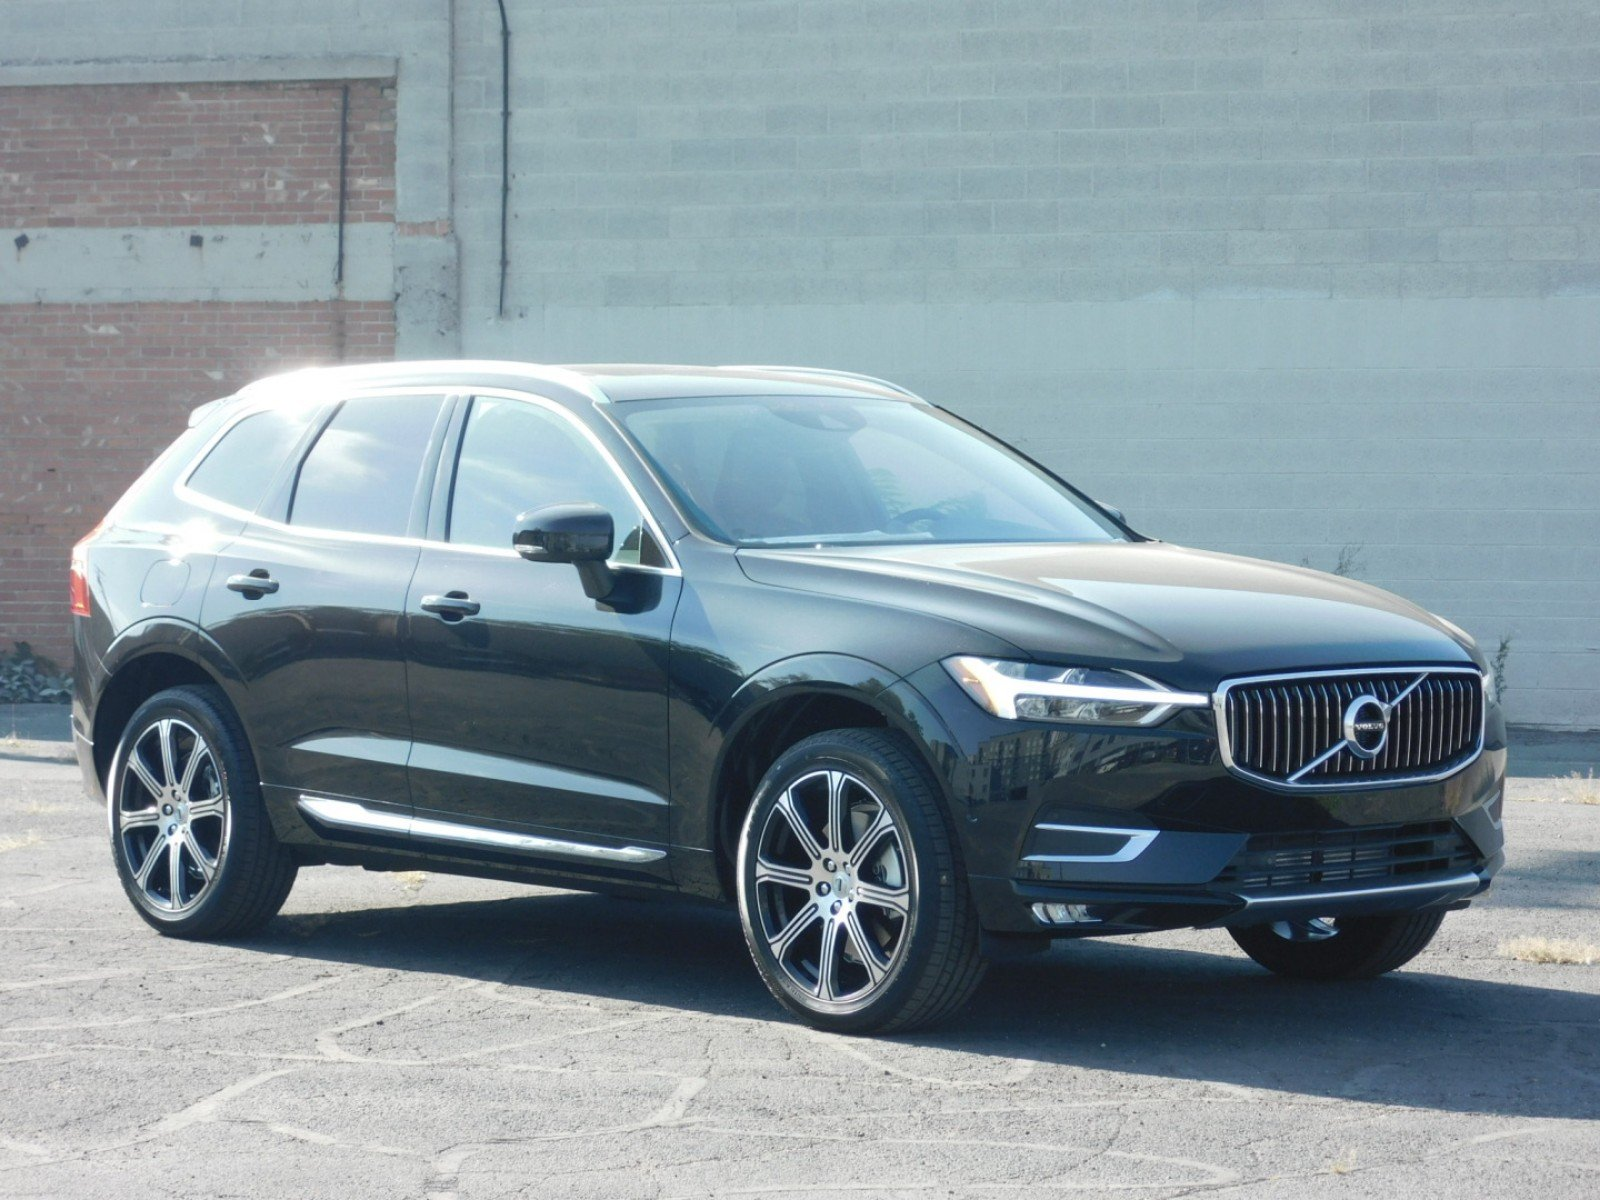 new 2019 volvo xc60 inscription sport utility 1v9077 ken garff automotive group. Black Bedroom Furniture Sets. Home Design Ideas